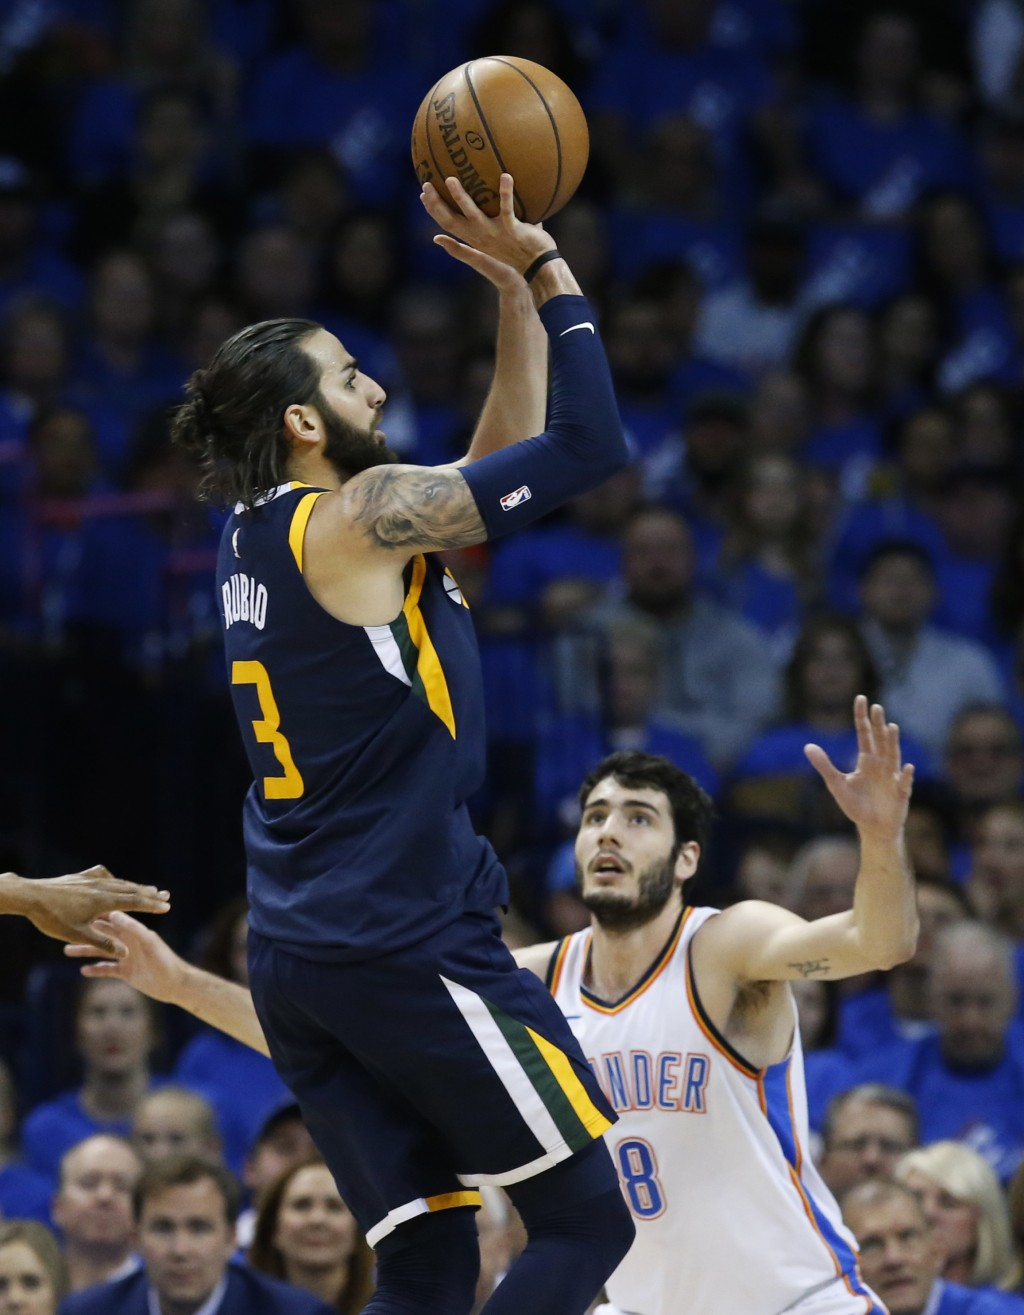 Utah Jazz guard Ricky Rubio (3) shoots in front of Oklahoma City Thunder guard Alex Abrines (8) in the first half of Game 1 of an NBA basketball first